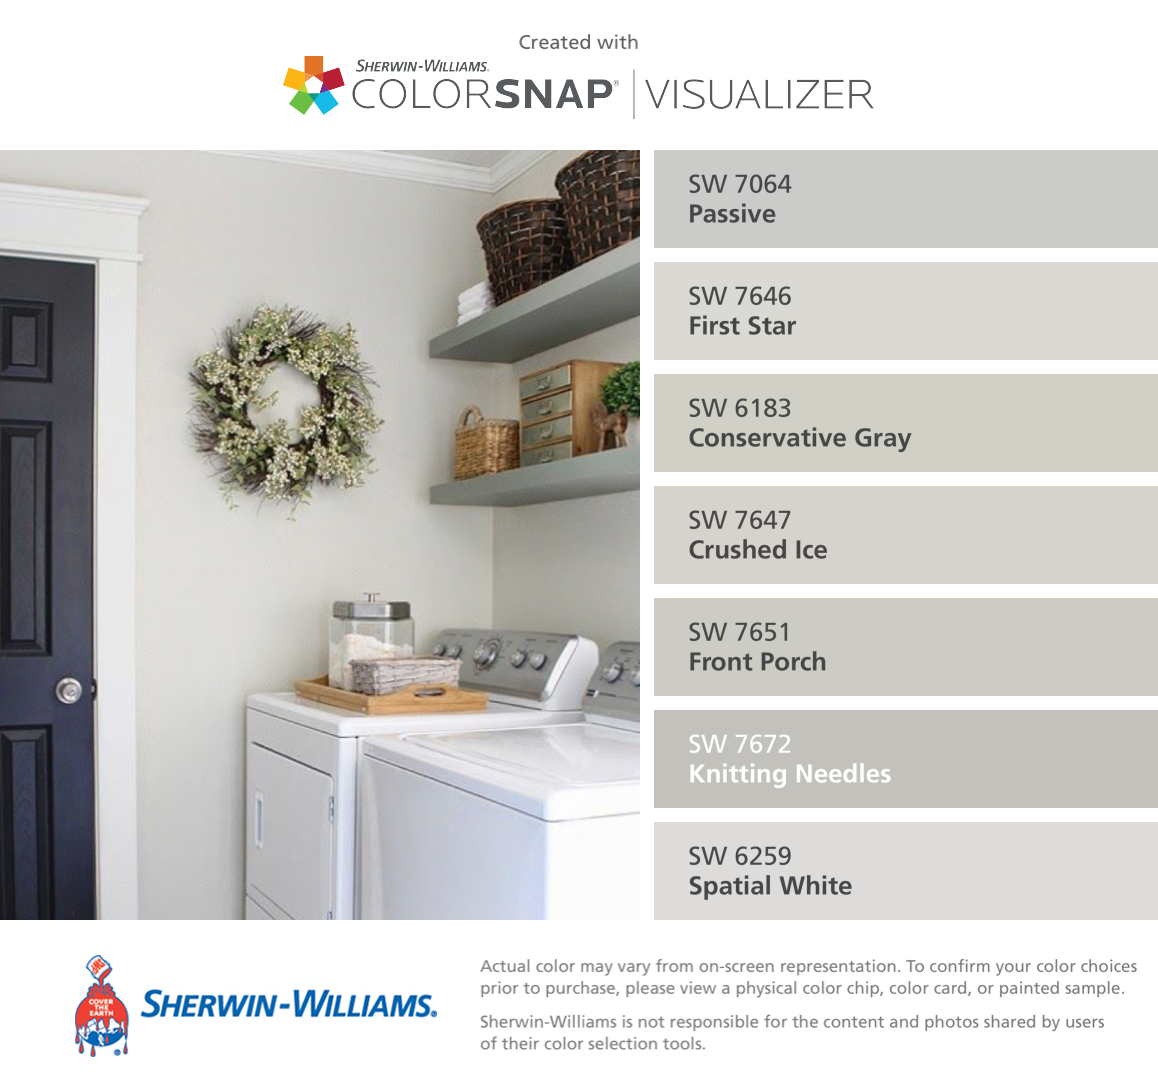 Knitting Needles Sherwin Williams : I found these colors with colorsnap visualizer for iphone